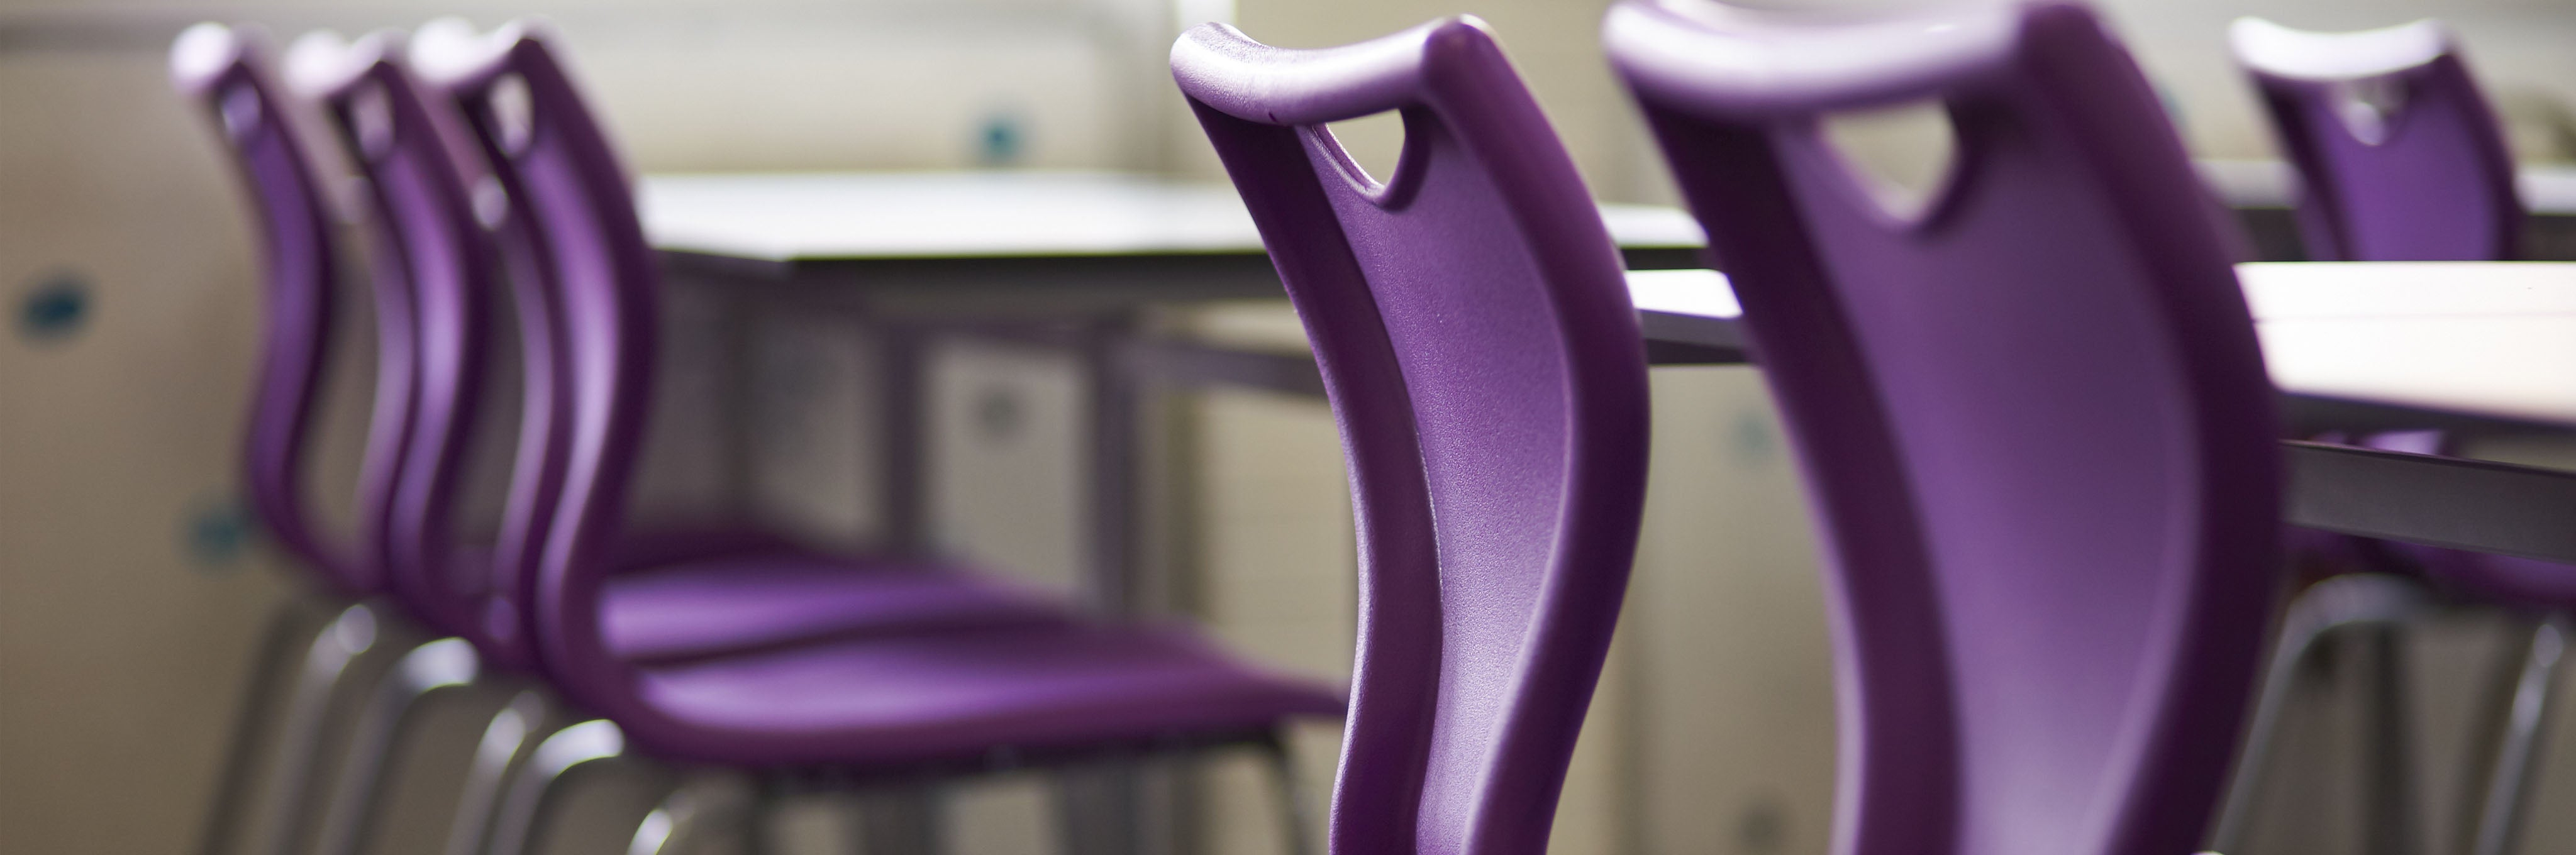 Student Chairs Australian Furniture Supplier Office Line